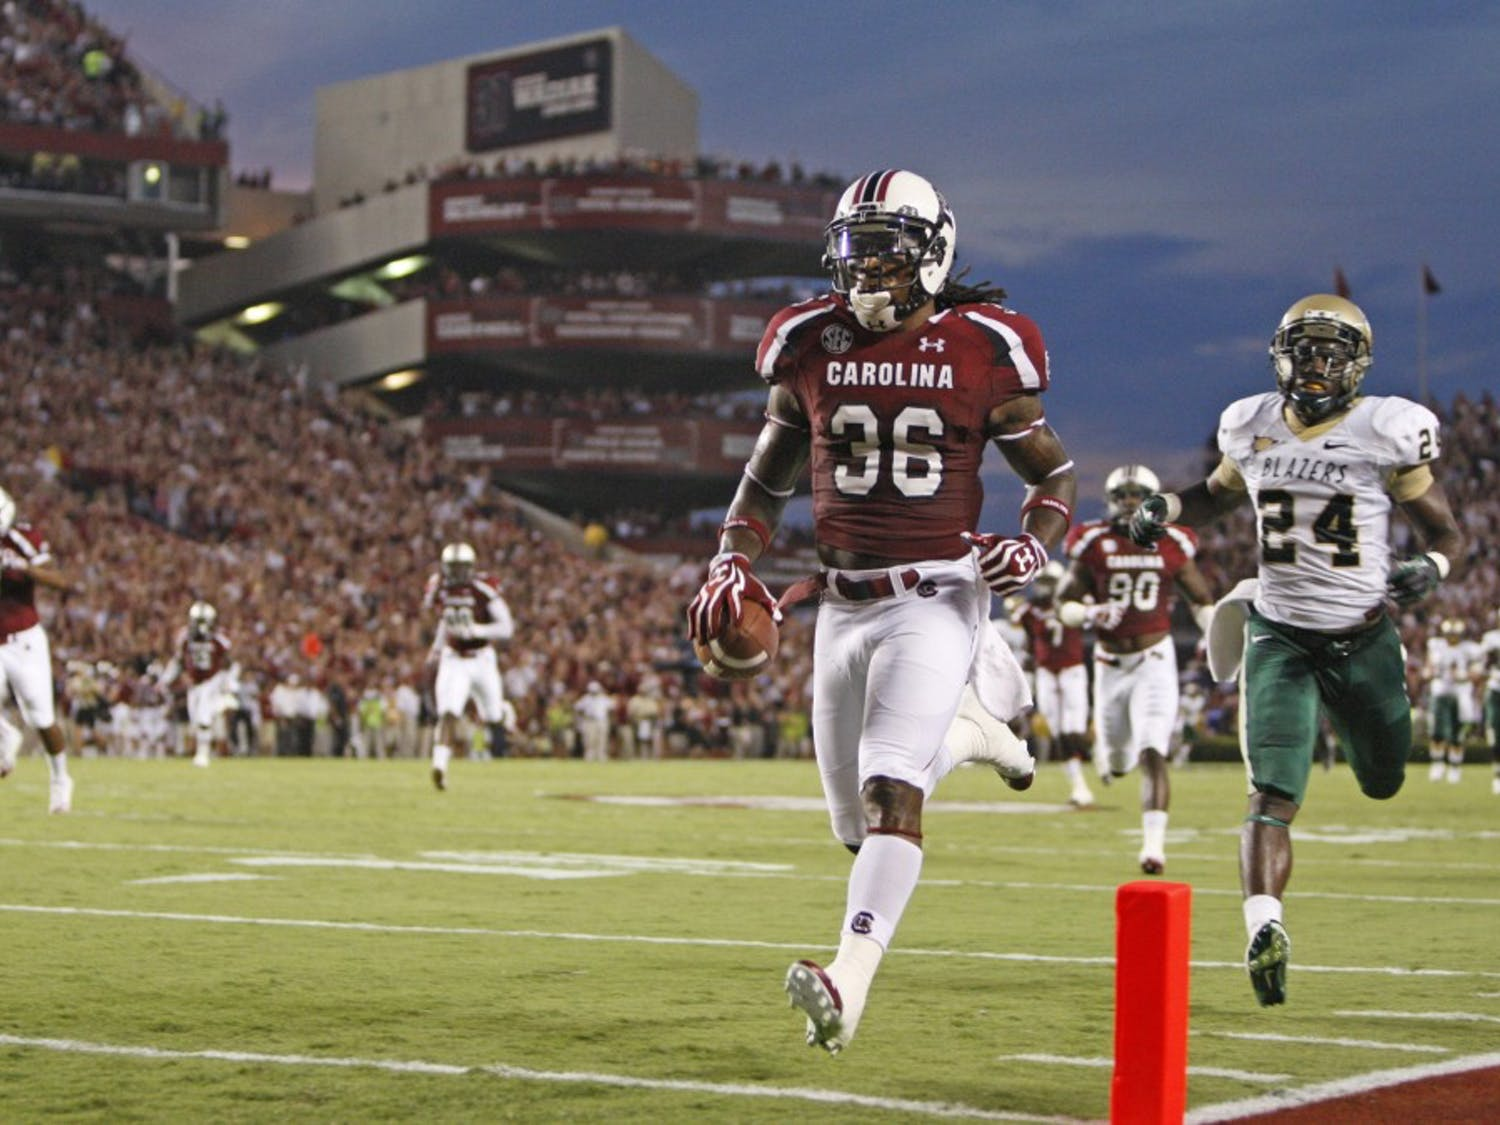 South Carolina safety D.J. Swearinger (36) scores a touchdown after recovering a fumble in the first quarter against Alabama-Birmingham at Williams-Brice Stadium in Columbia, South Carolina, on Saturday, September 15, 2012. (Gerry Melendez/The State/MCT)